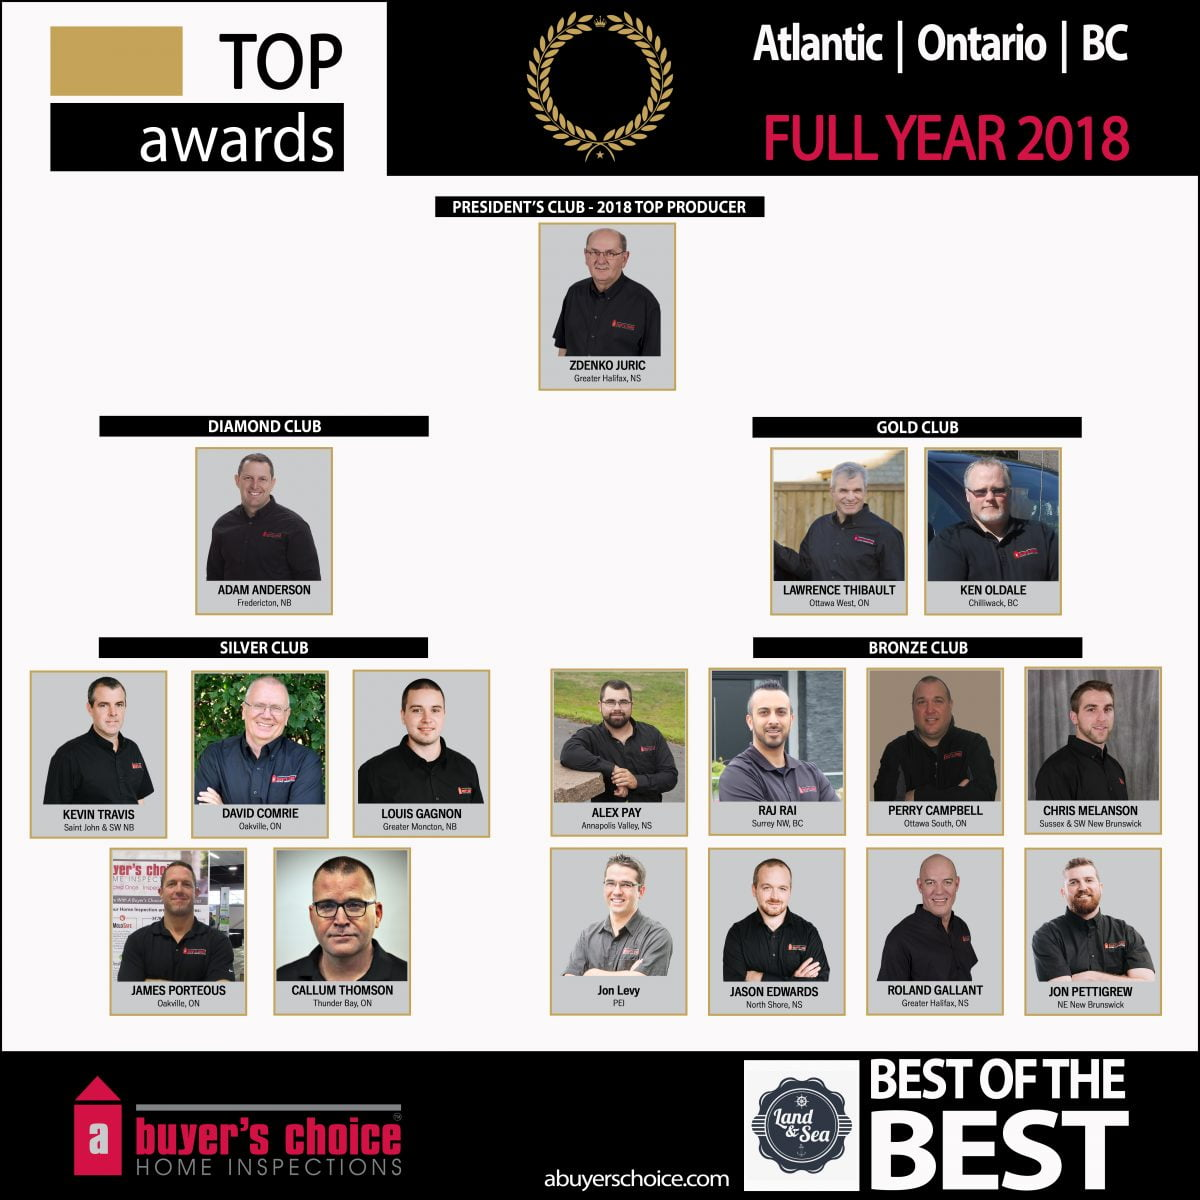 Top Awards Monthly LandSea Full Year